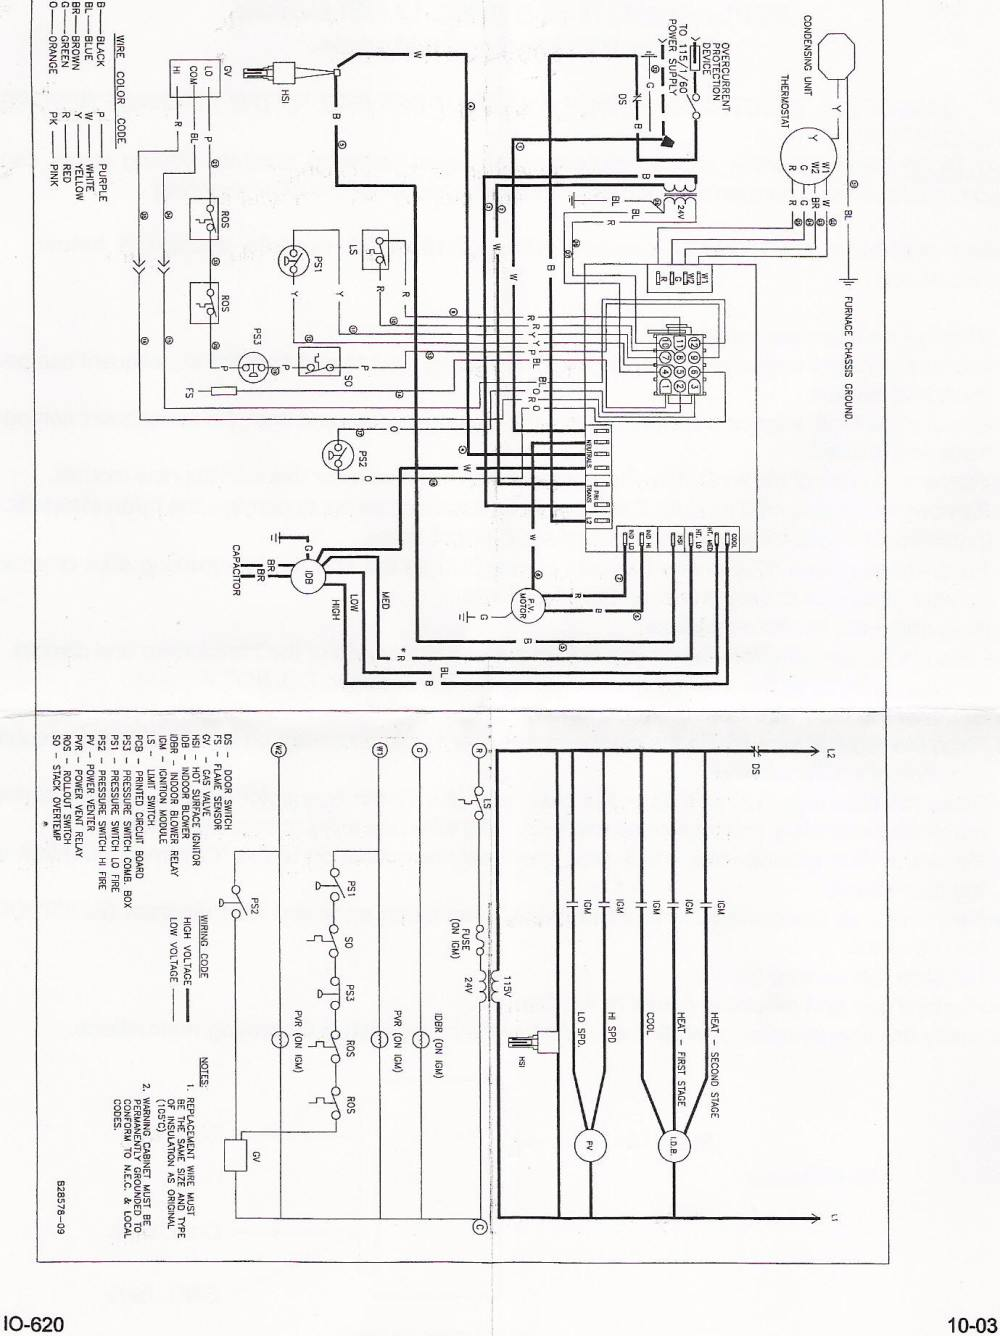 medium resolution of  wrg 4274 1170063 circuit board wiring diagram for honeywell gas furnace